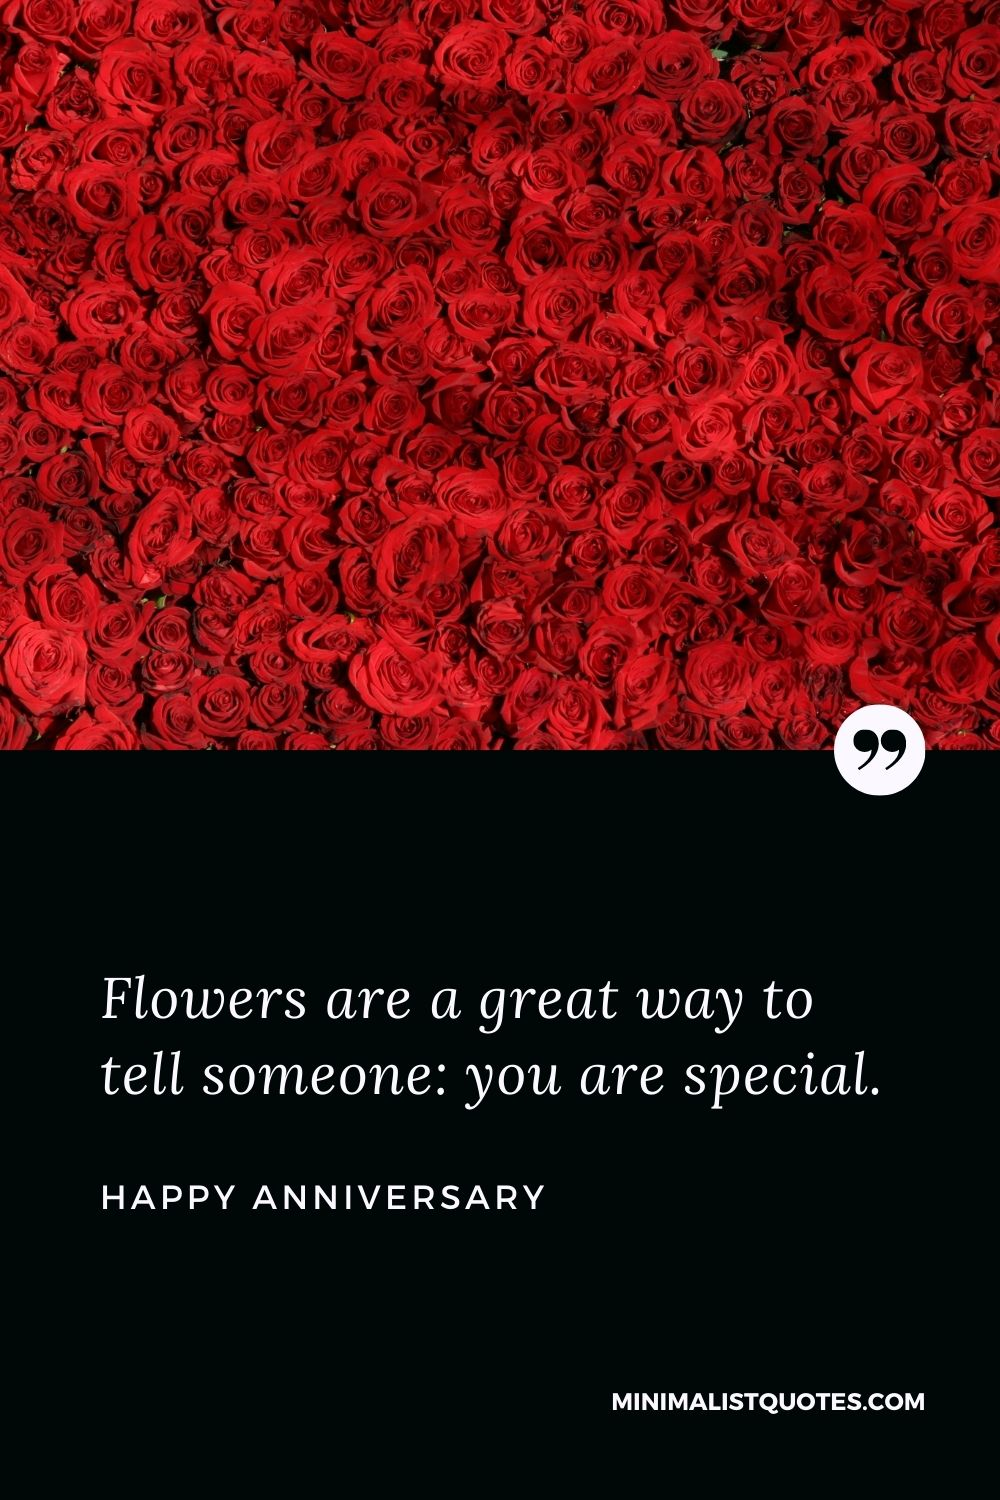 Anniversary Wish & Message With Image: Flowers are a great way to tell someone: you are special. Happy Anniversary!